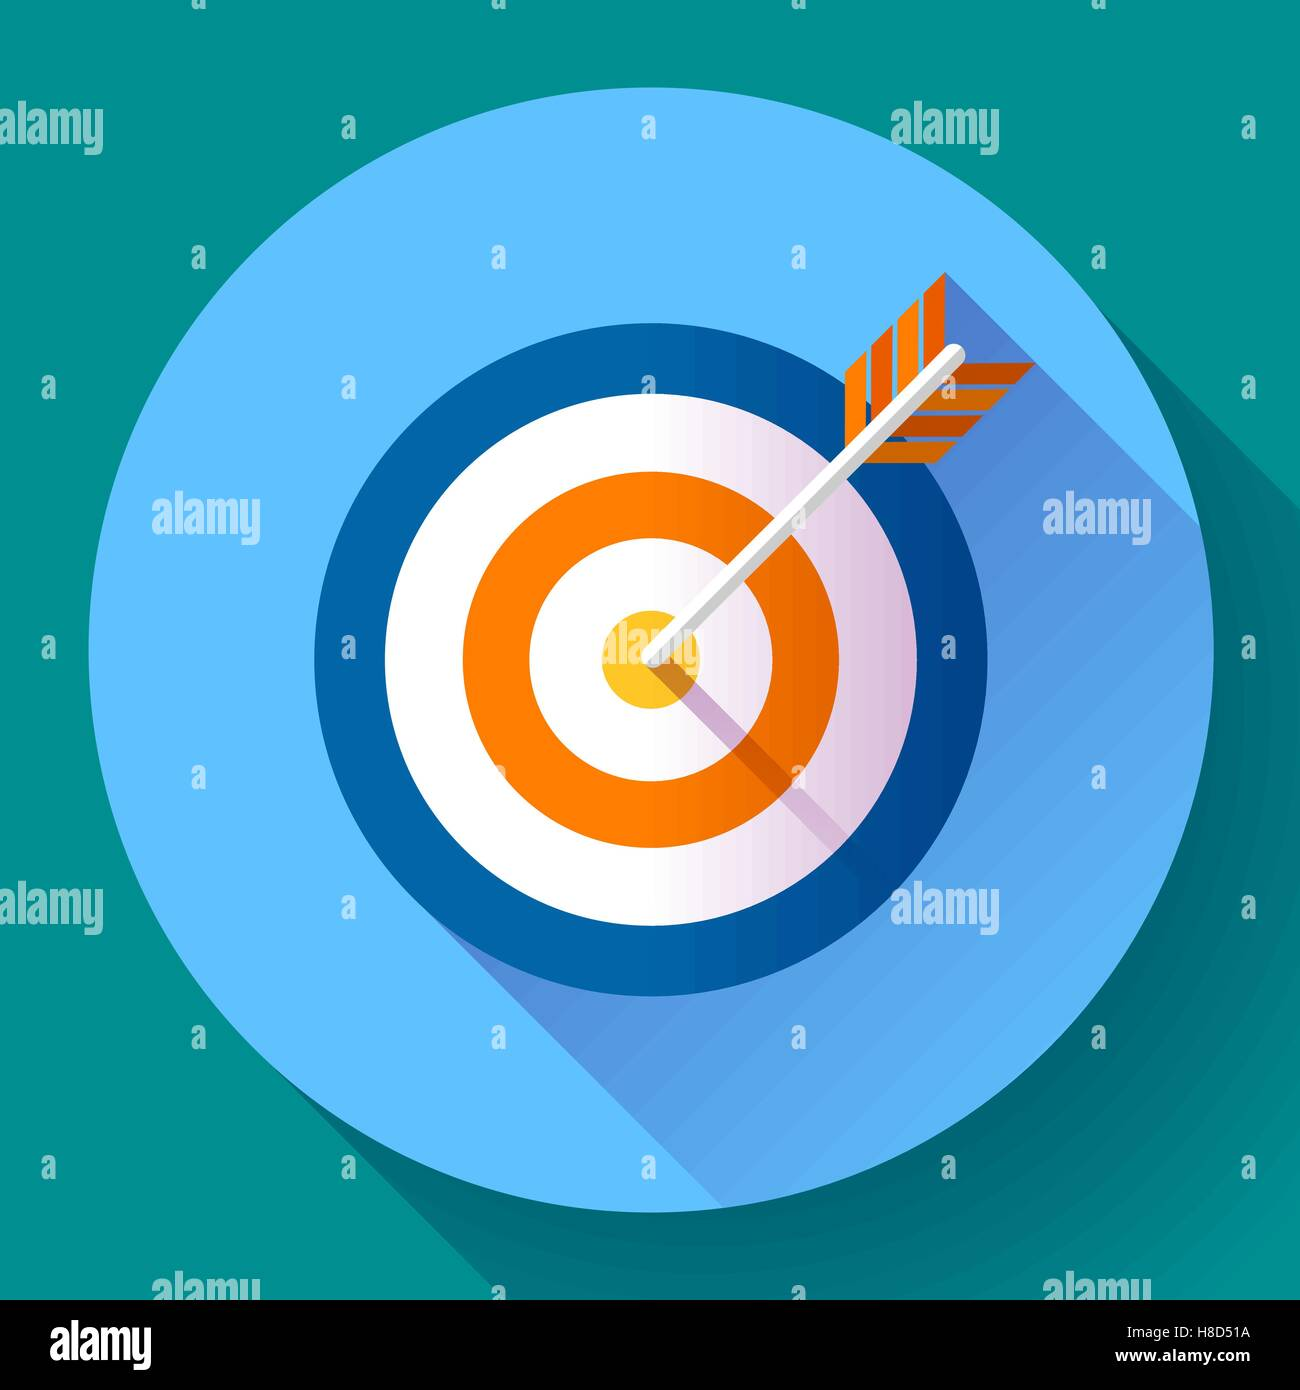 Target marketing icon target with arrow symbol modern flat target marketing icon target with arrow symbol modern flat design concept for web banners web sites printed materials infog buycottarizona Image collections